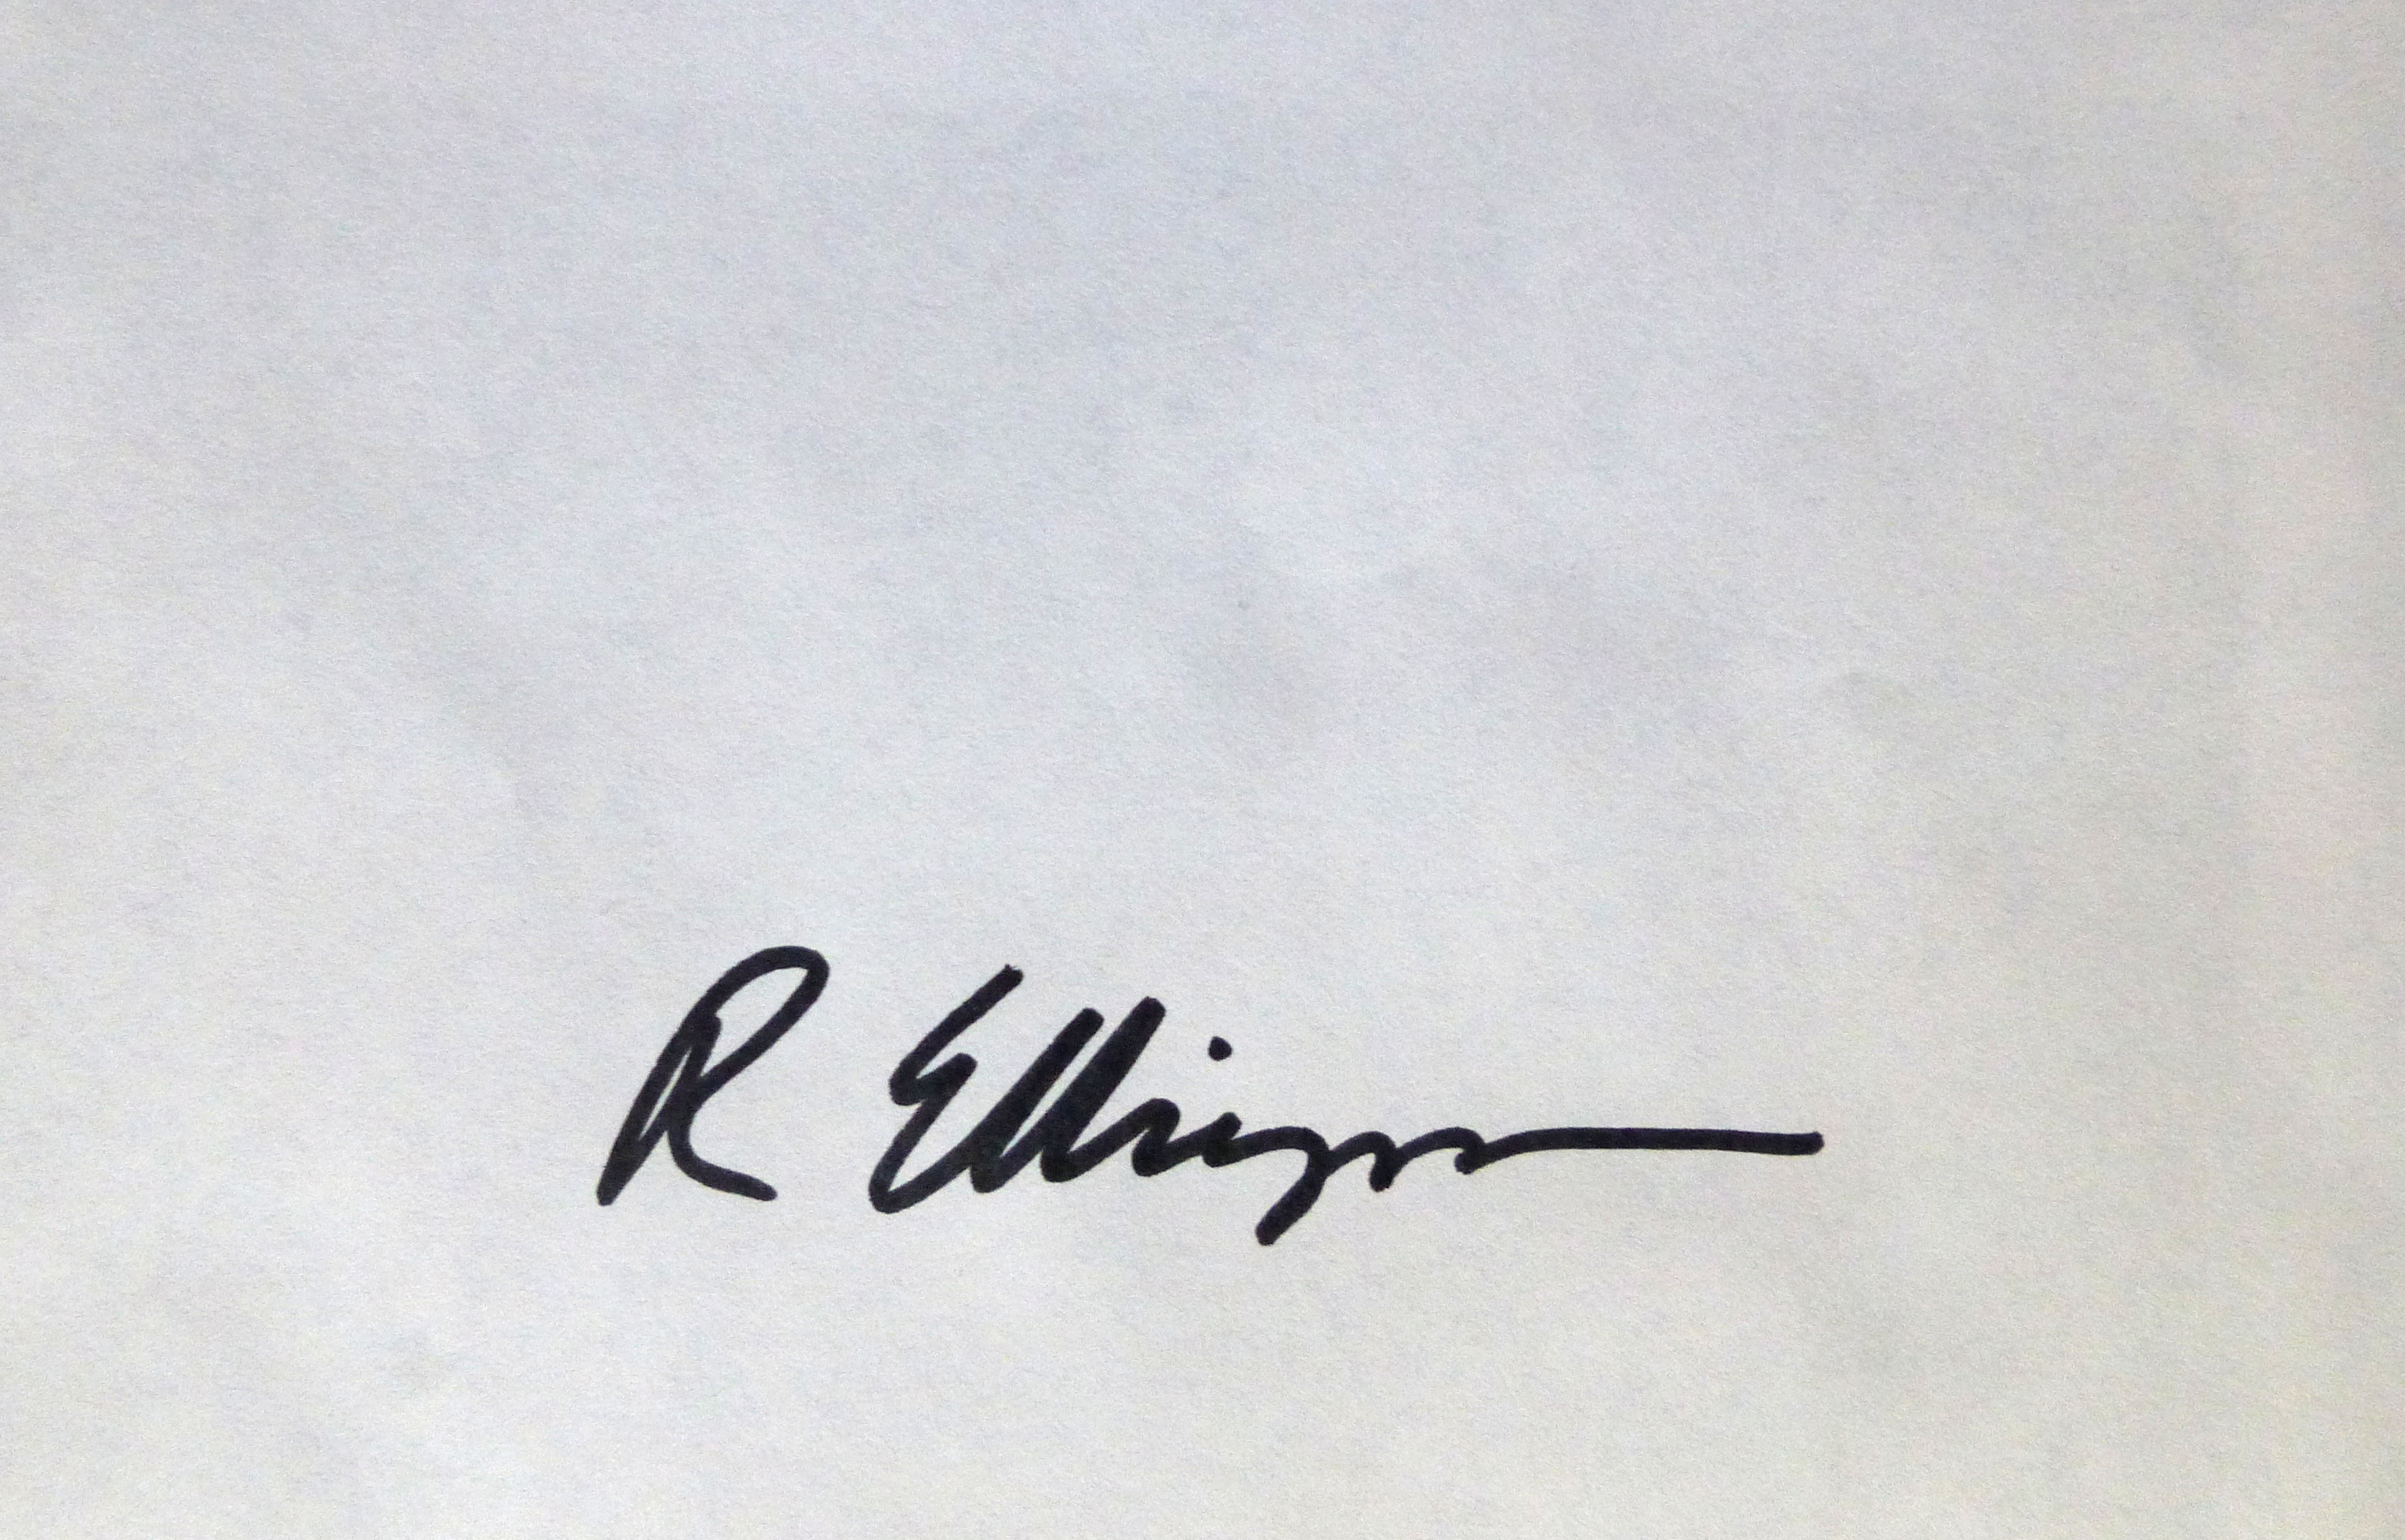 Ruth Ellingson's Signature